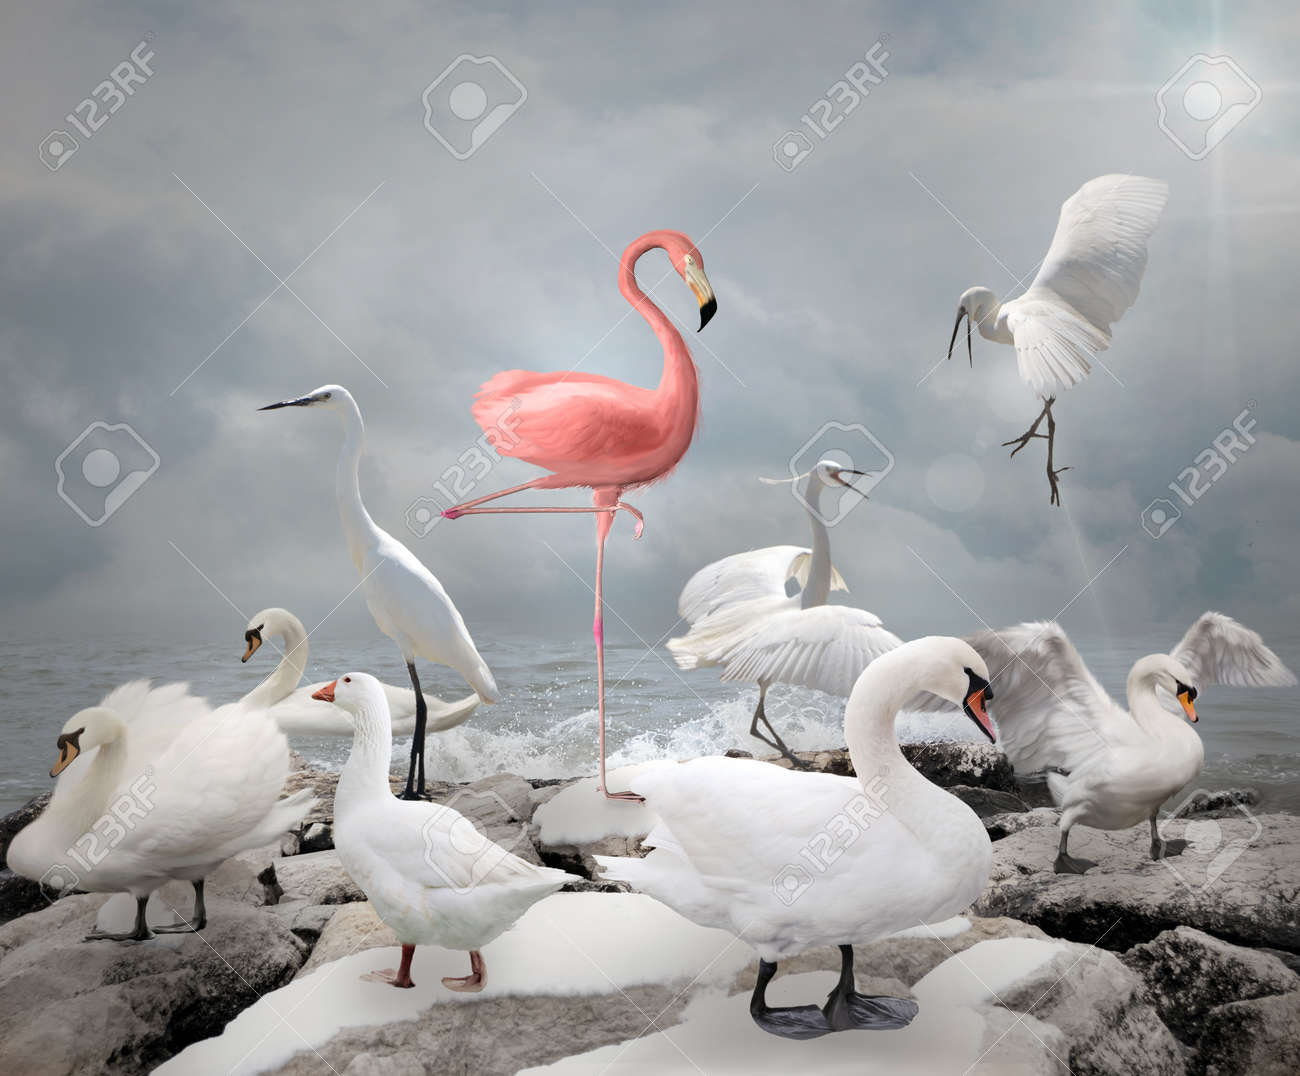 Stand out from a crowd - Flamingo and white birds - 51338060